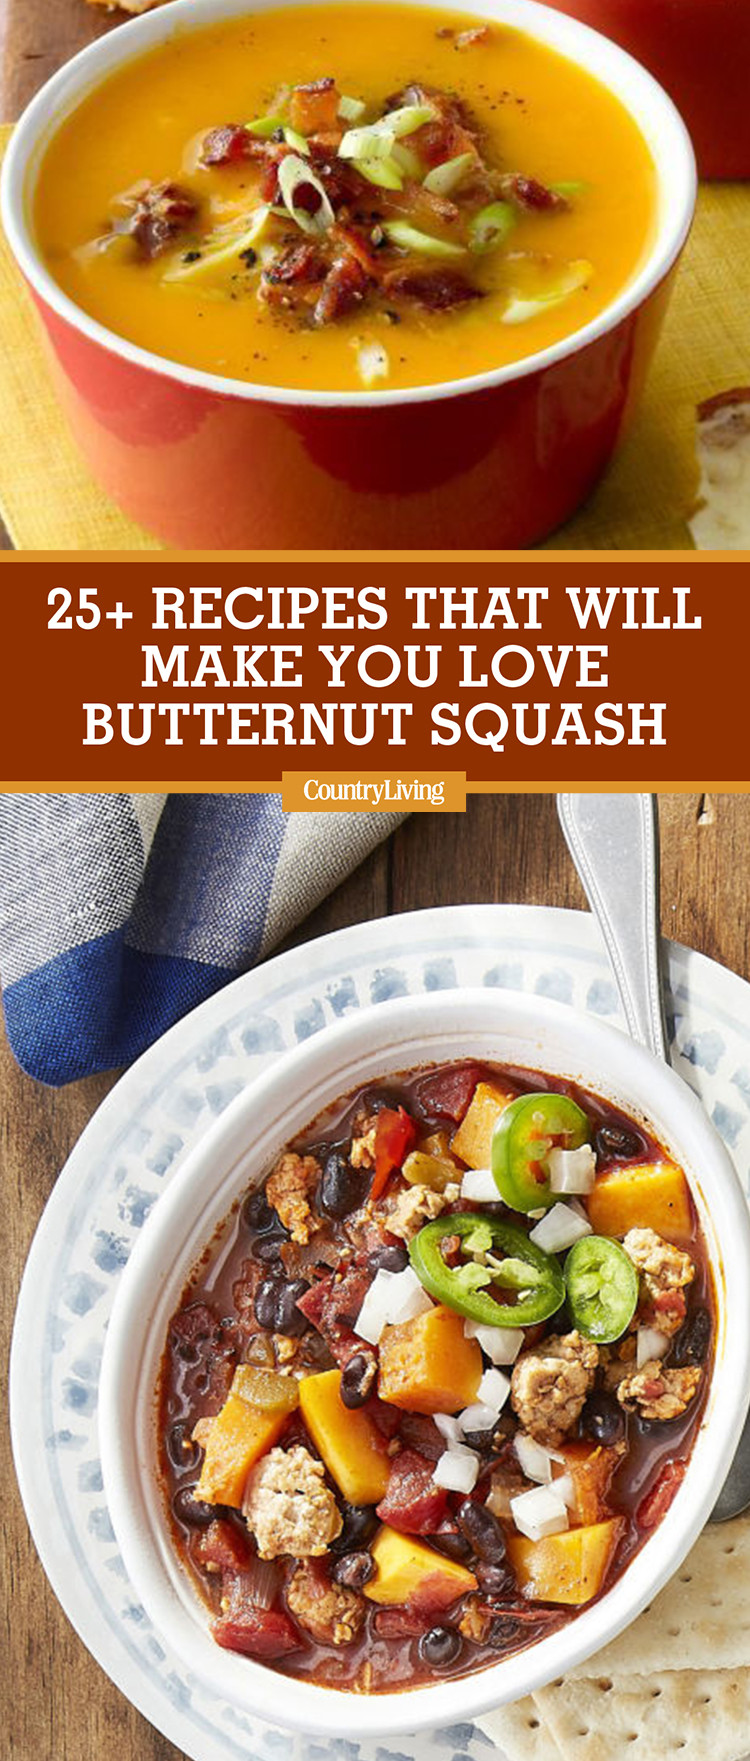 Butternut Squash Microwave  27 Easy Butternut Squash Recipes How To Cook Butternut